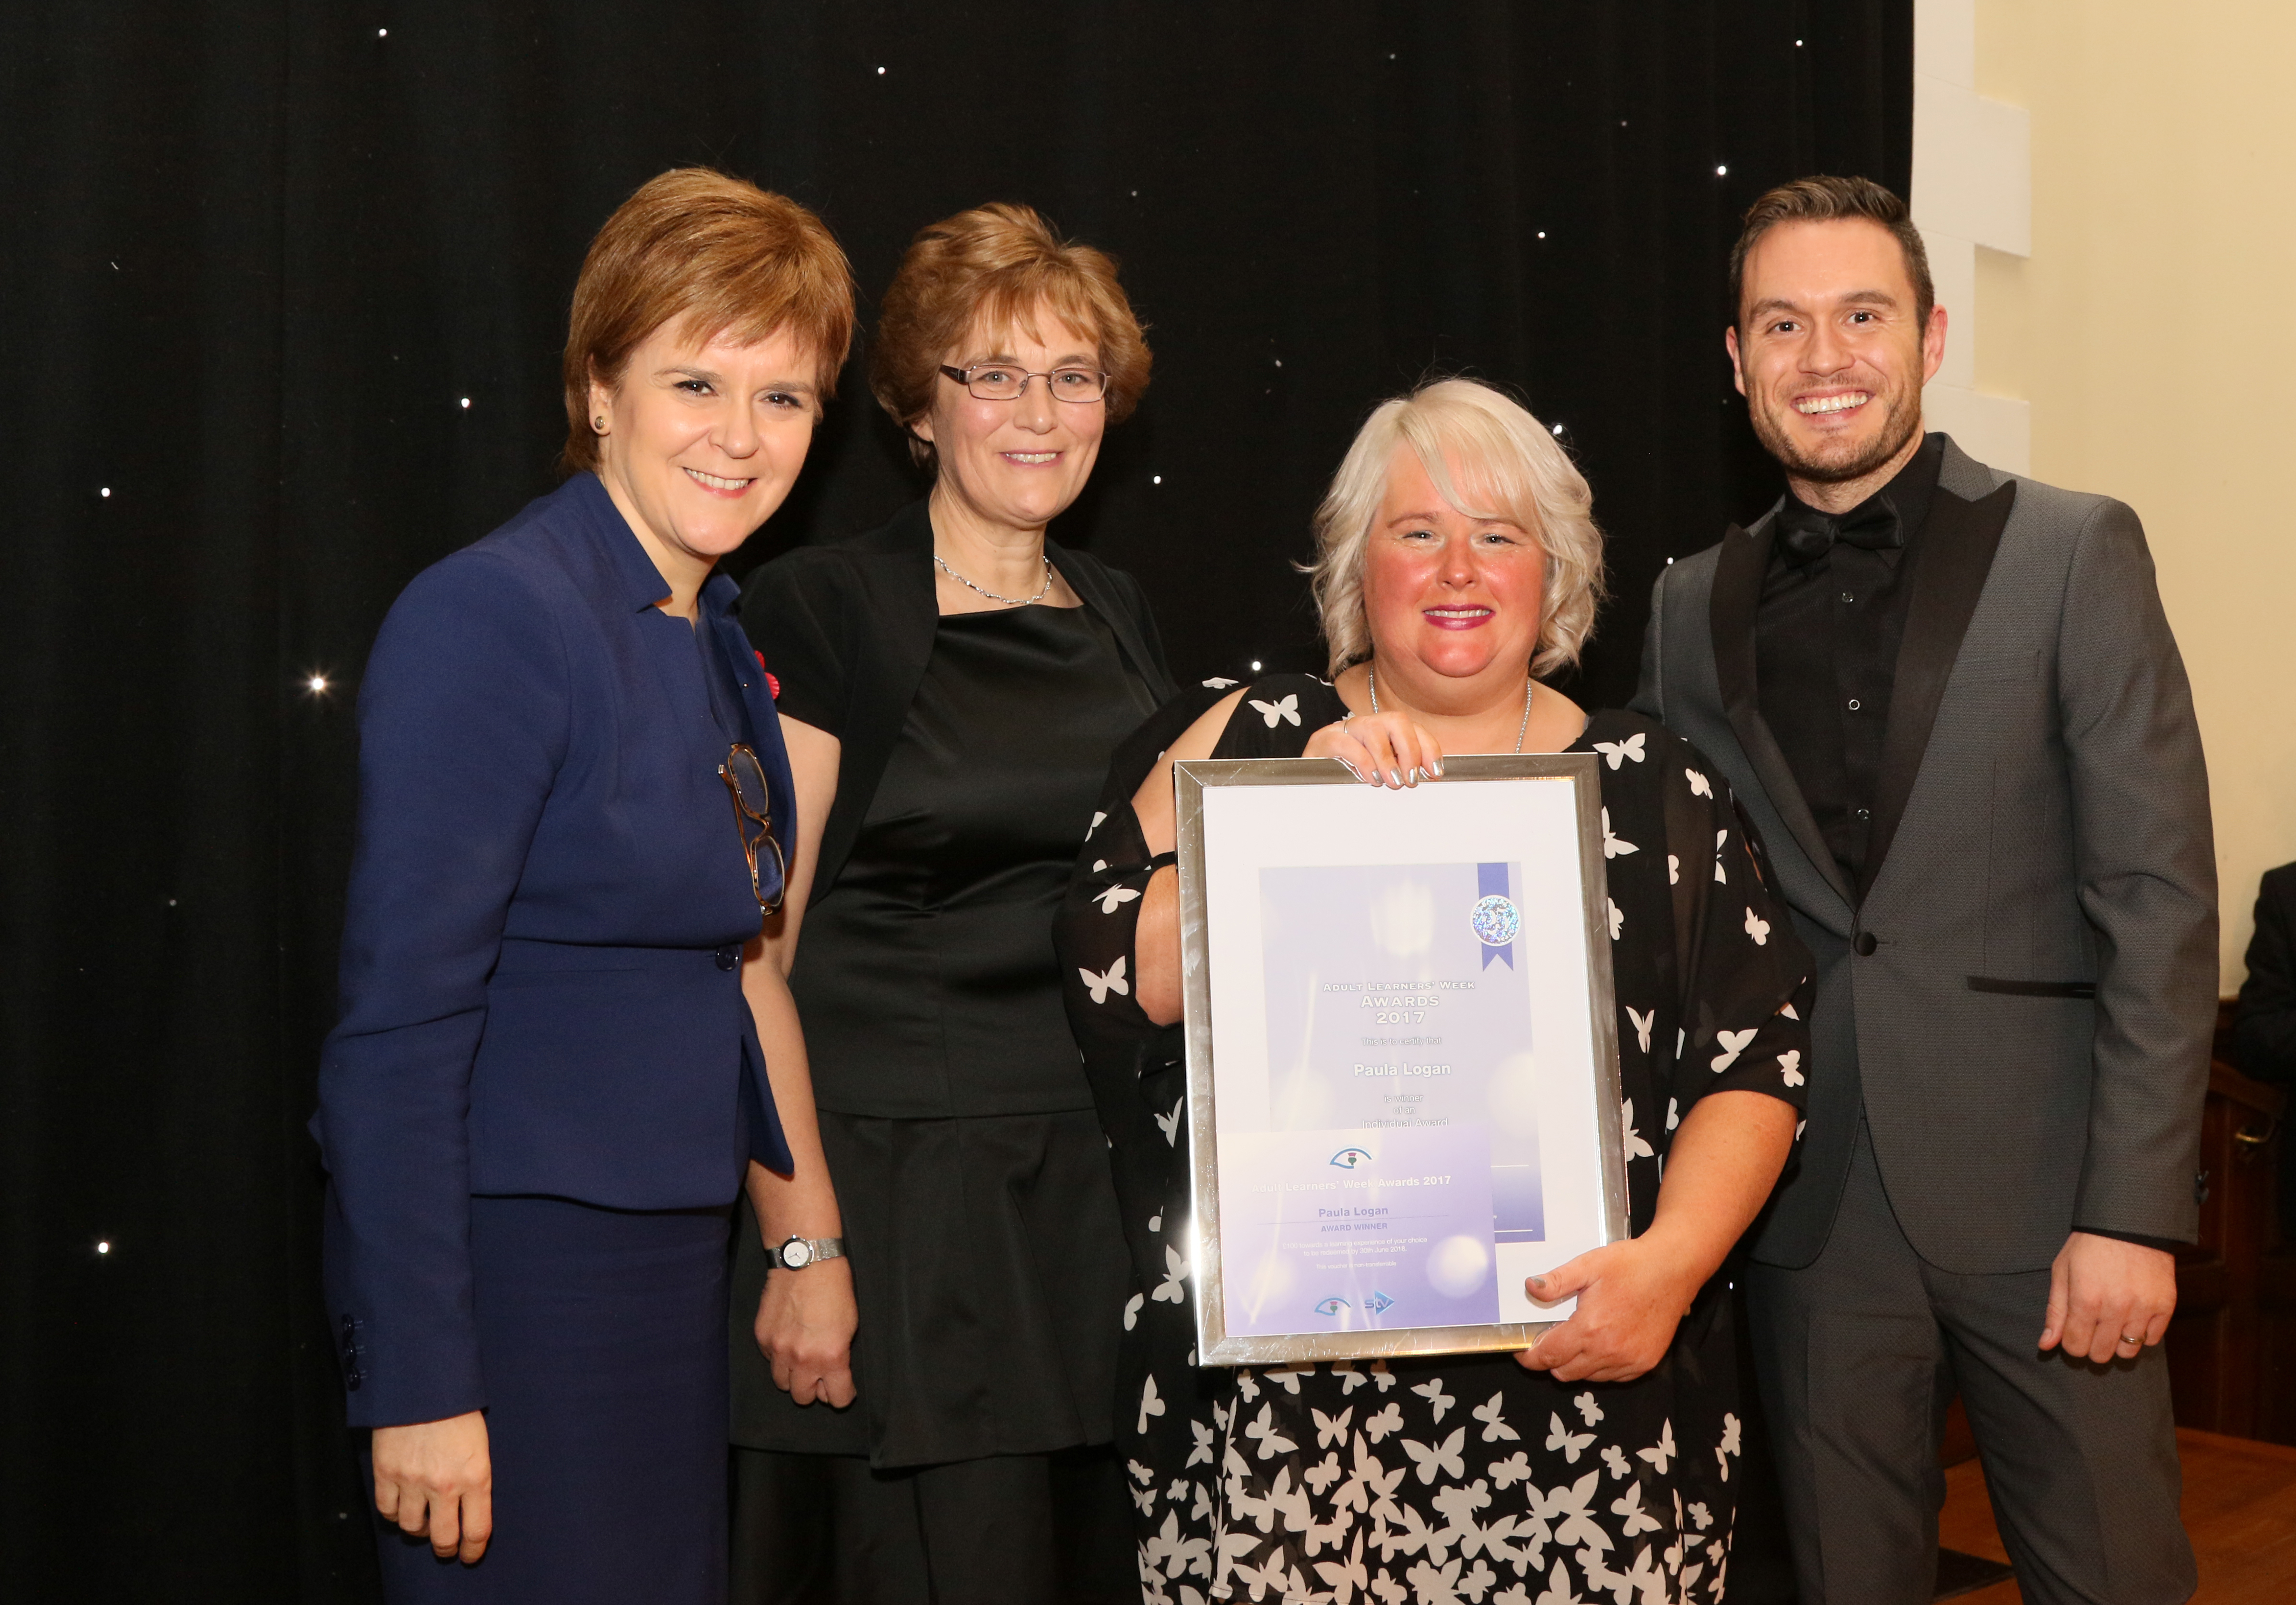 Paula Logan with First Minister Nicola Sturgeon, Moira Strathdee, Paula and Jordan Young from the BBC's River City.